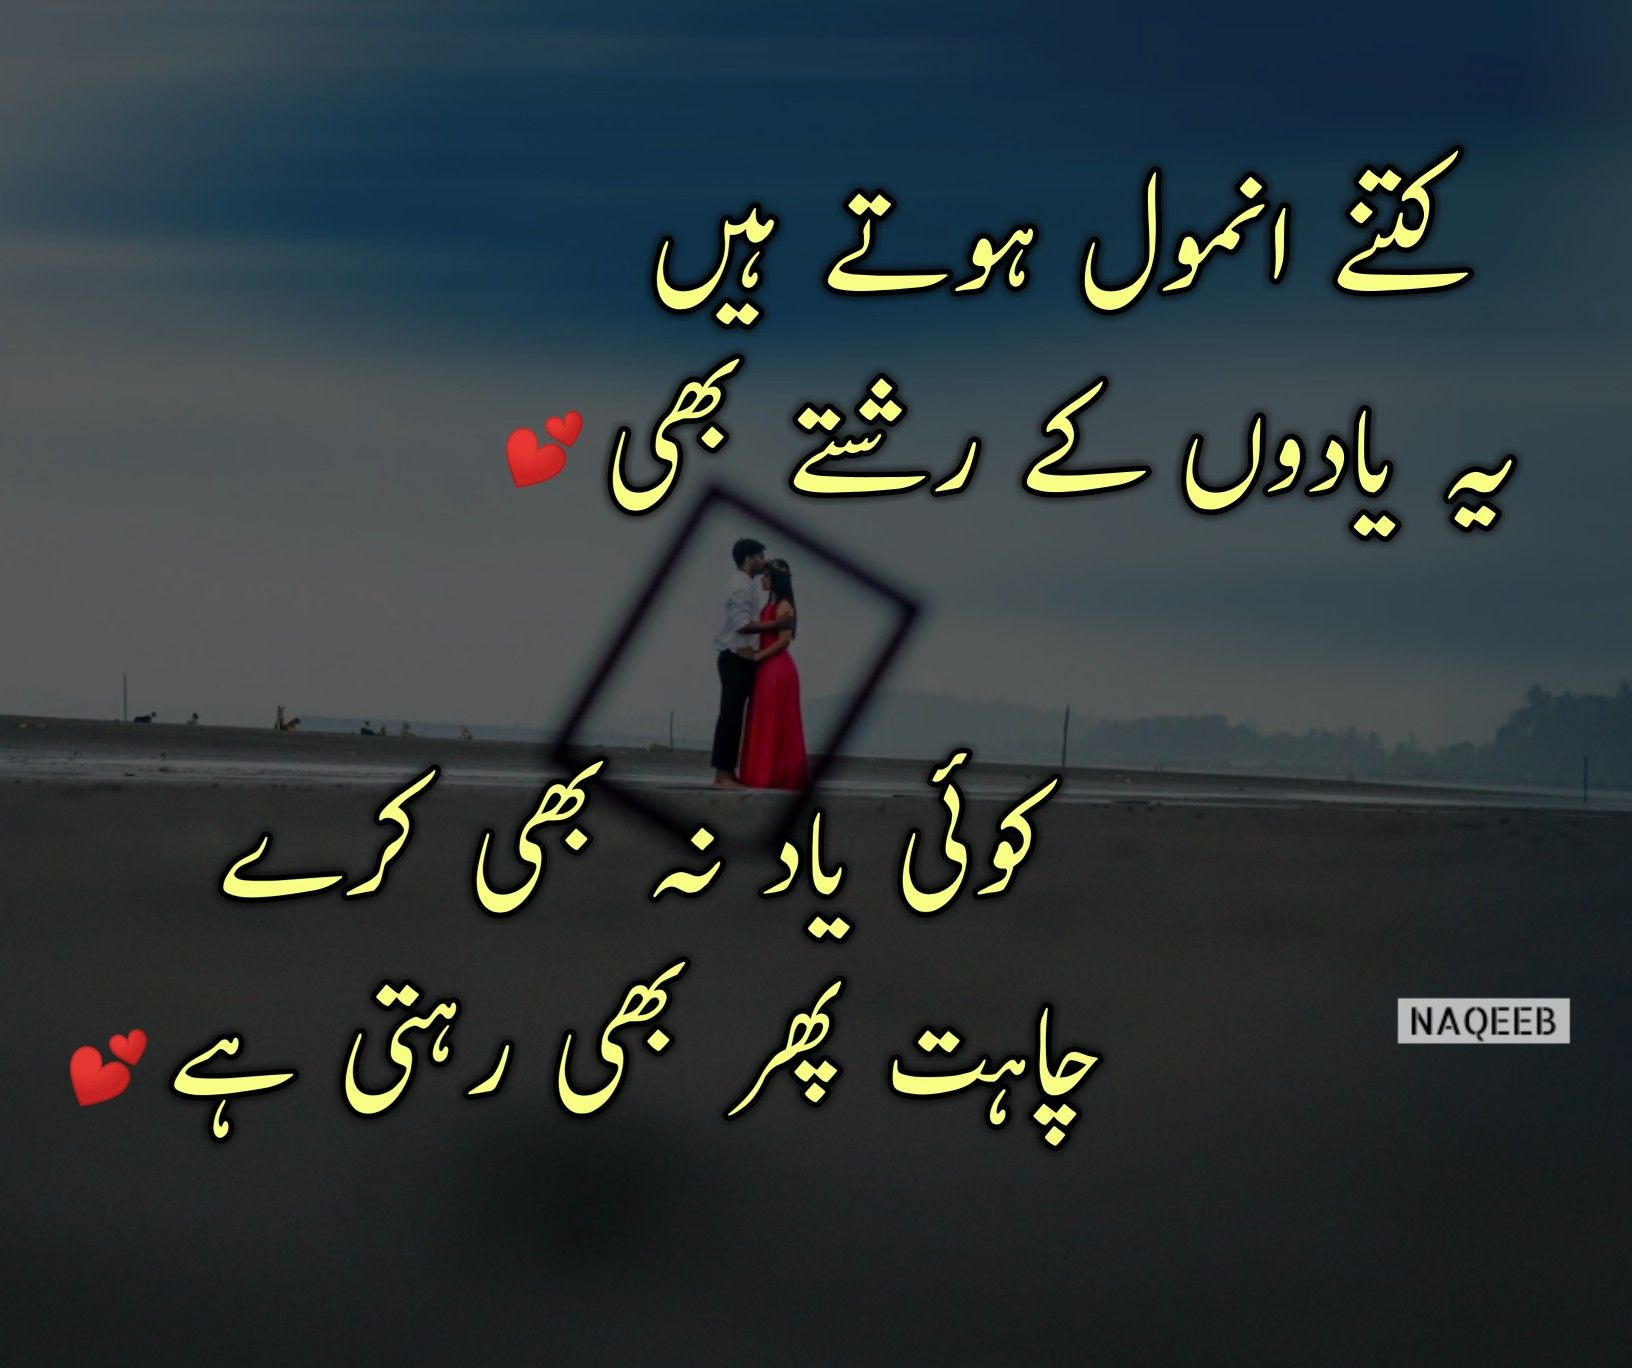 Deep Quotes About Love And Life In Urdu - Best Quotes